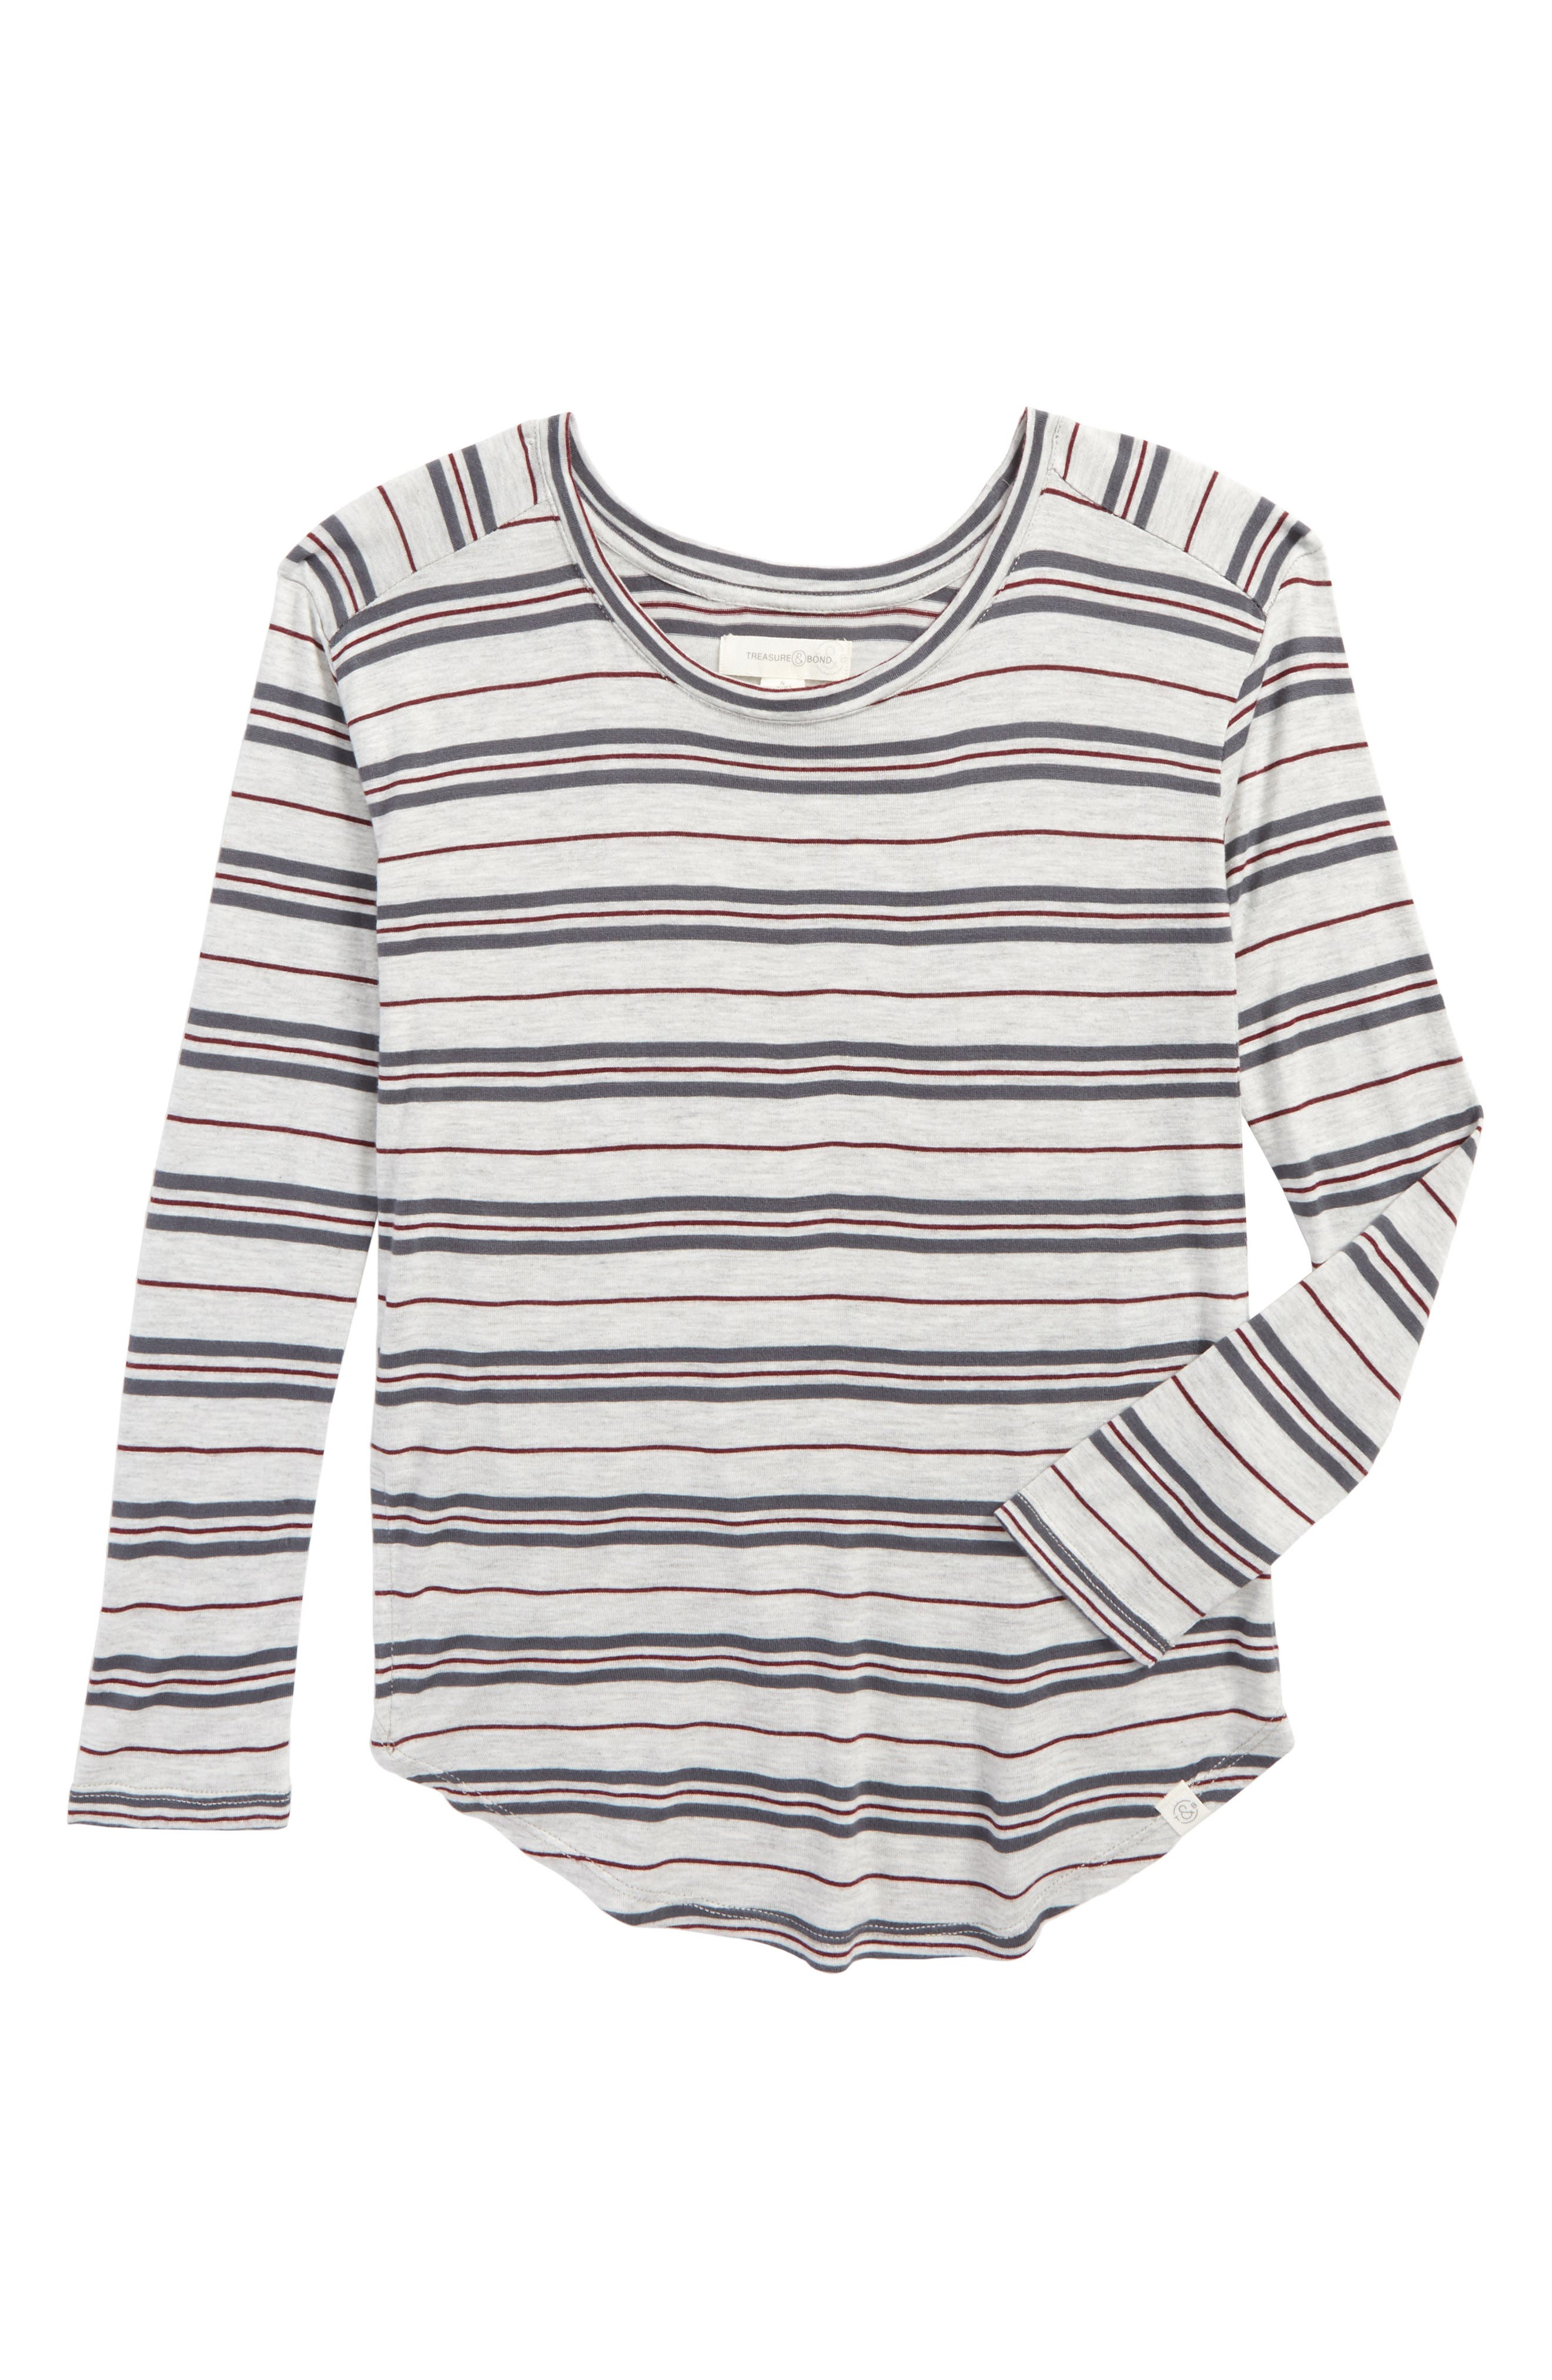 Multi Stripe Tee,                             Main thumbnail 1, color,                             050